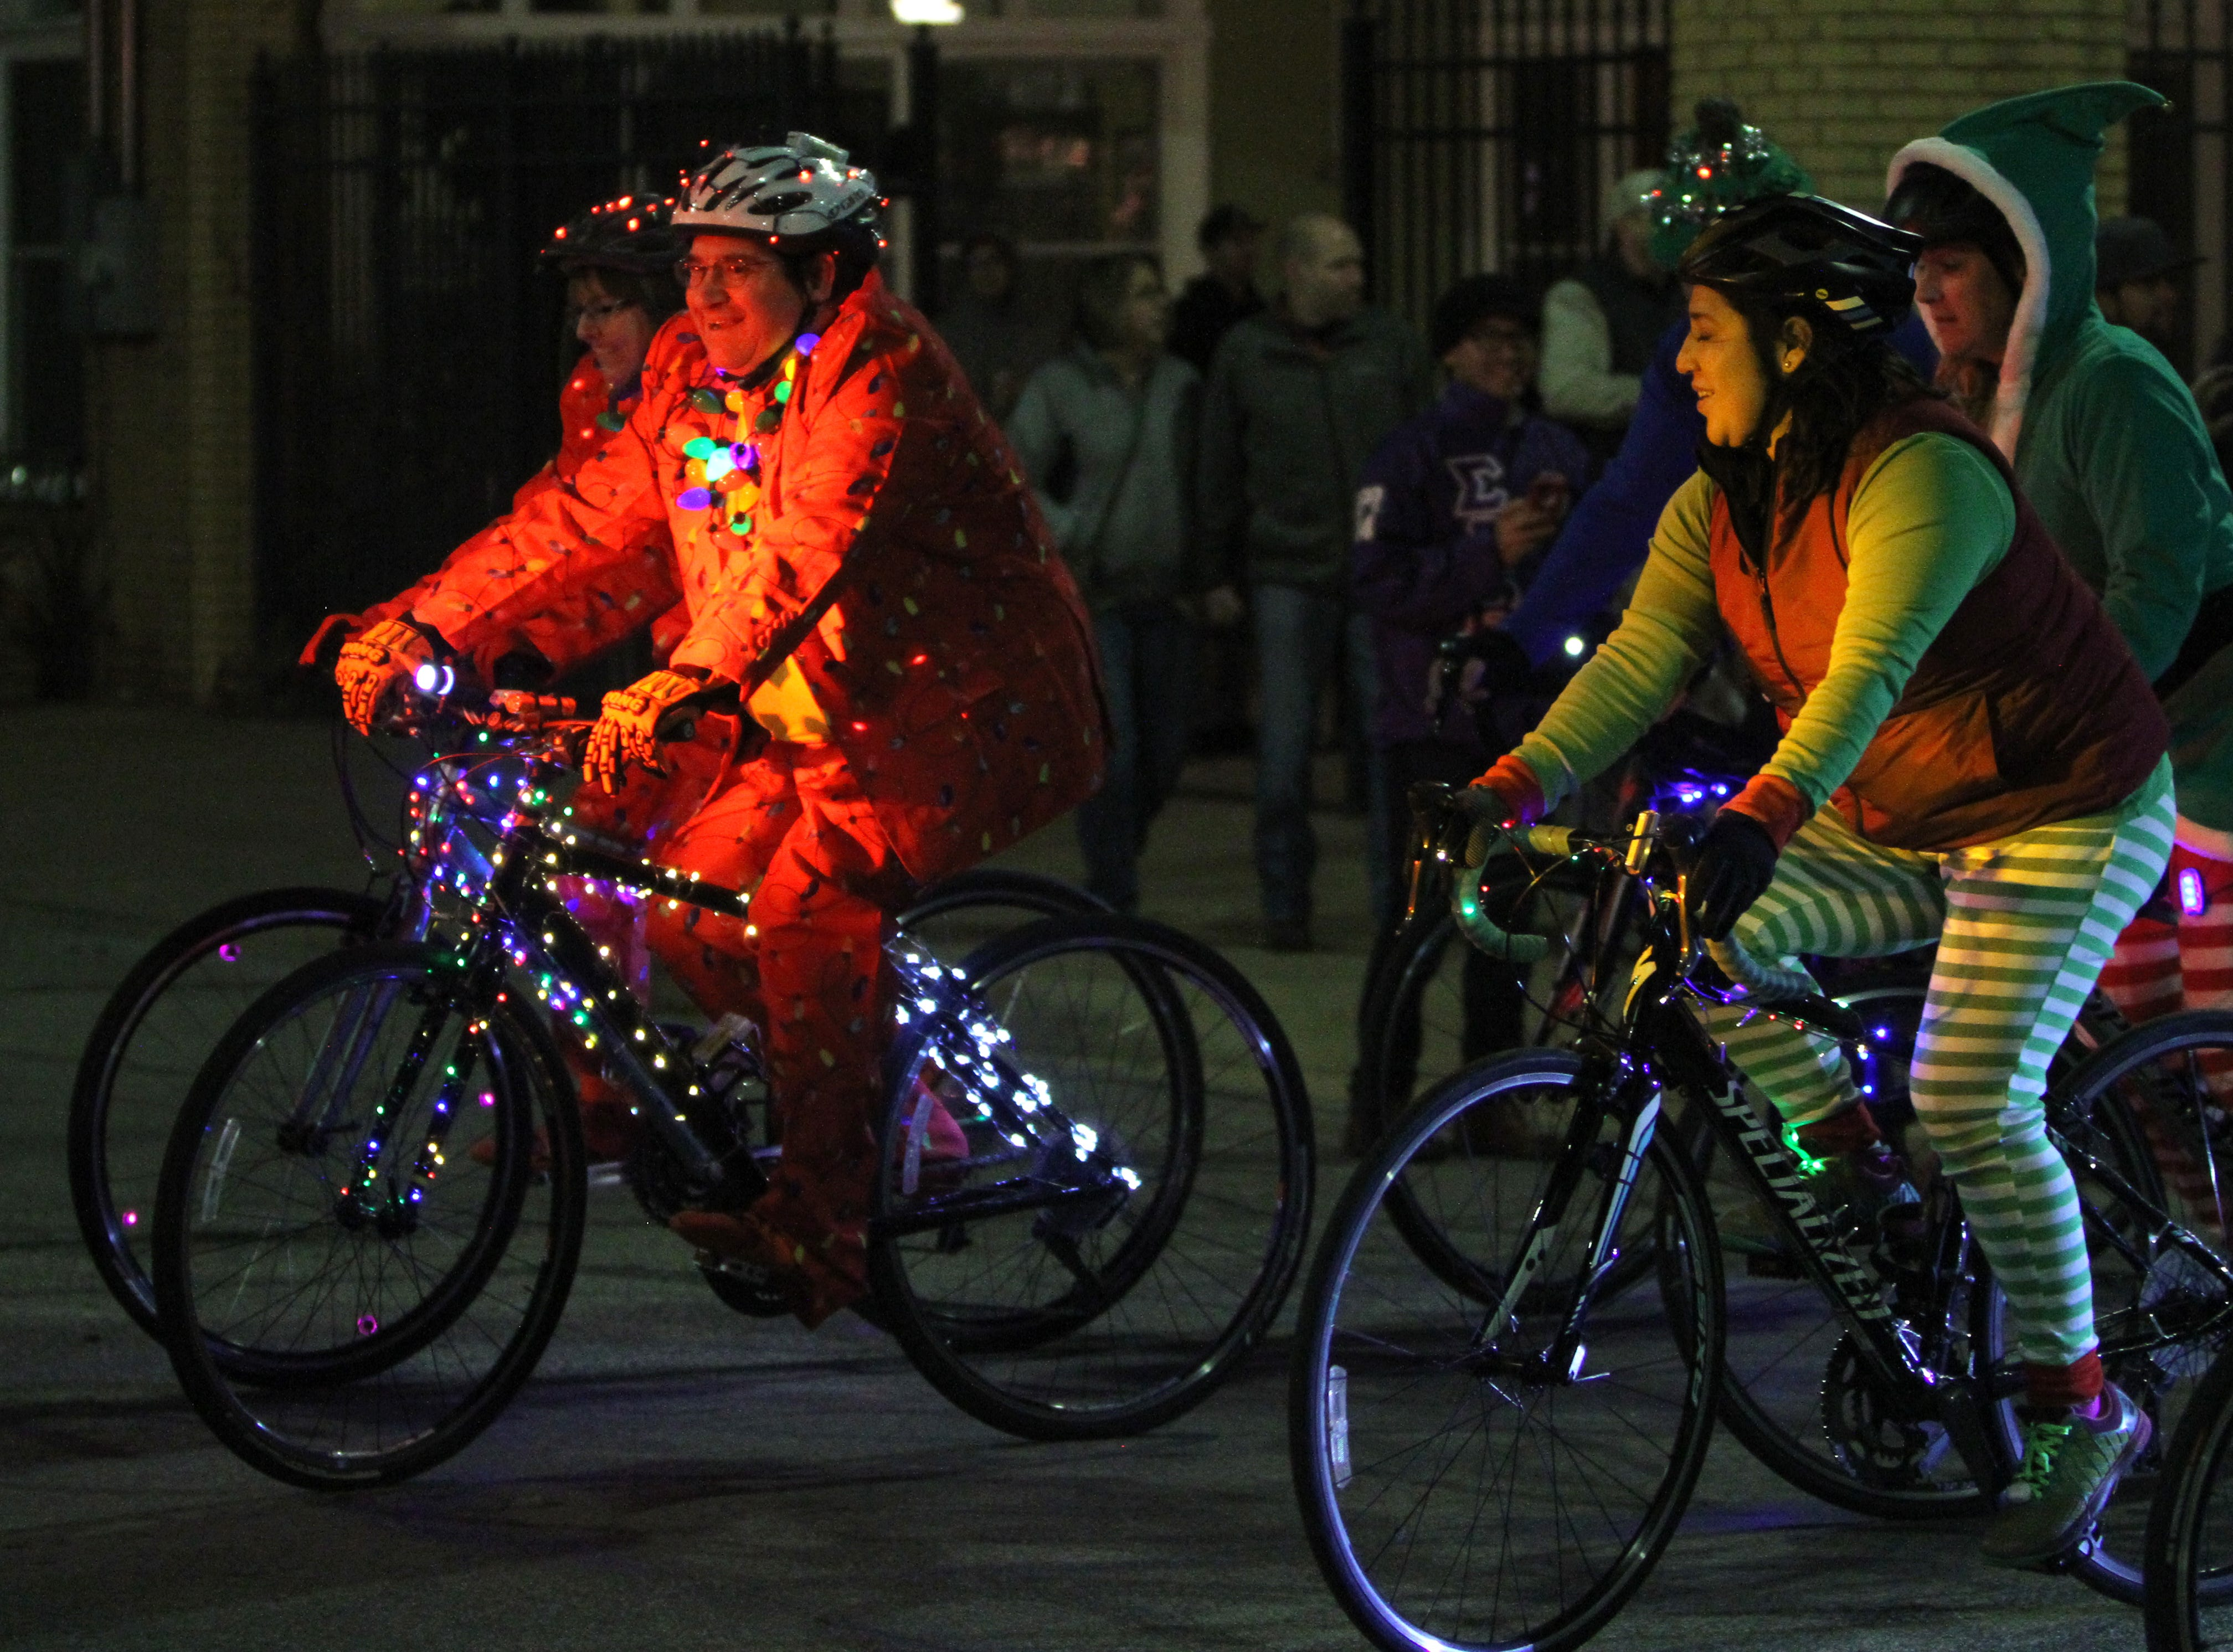 People ride bikes in the Wichita Falls City Lights Parade Saturday, Nov. 17, 2018, downtown.